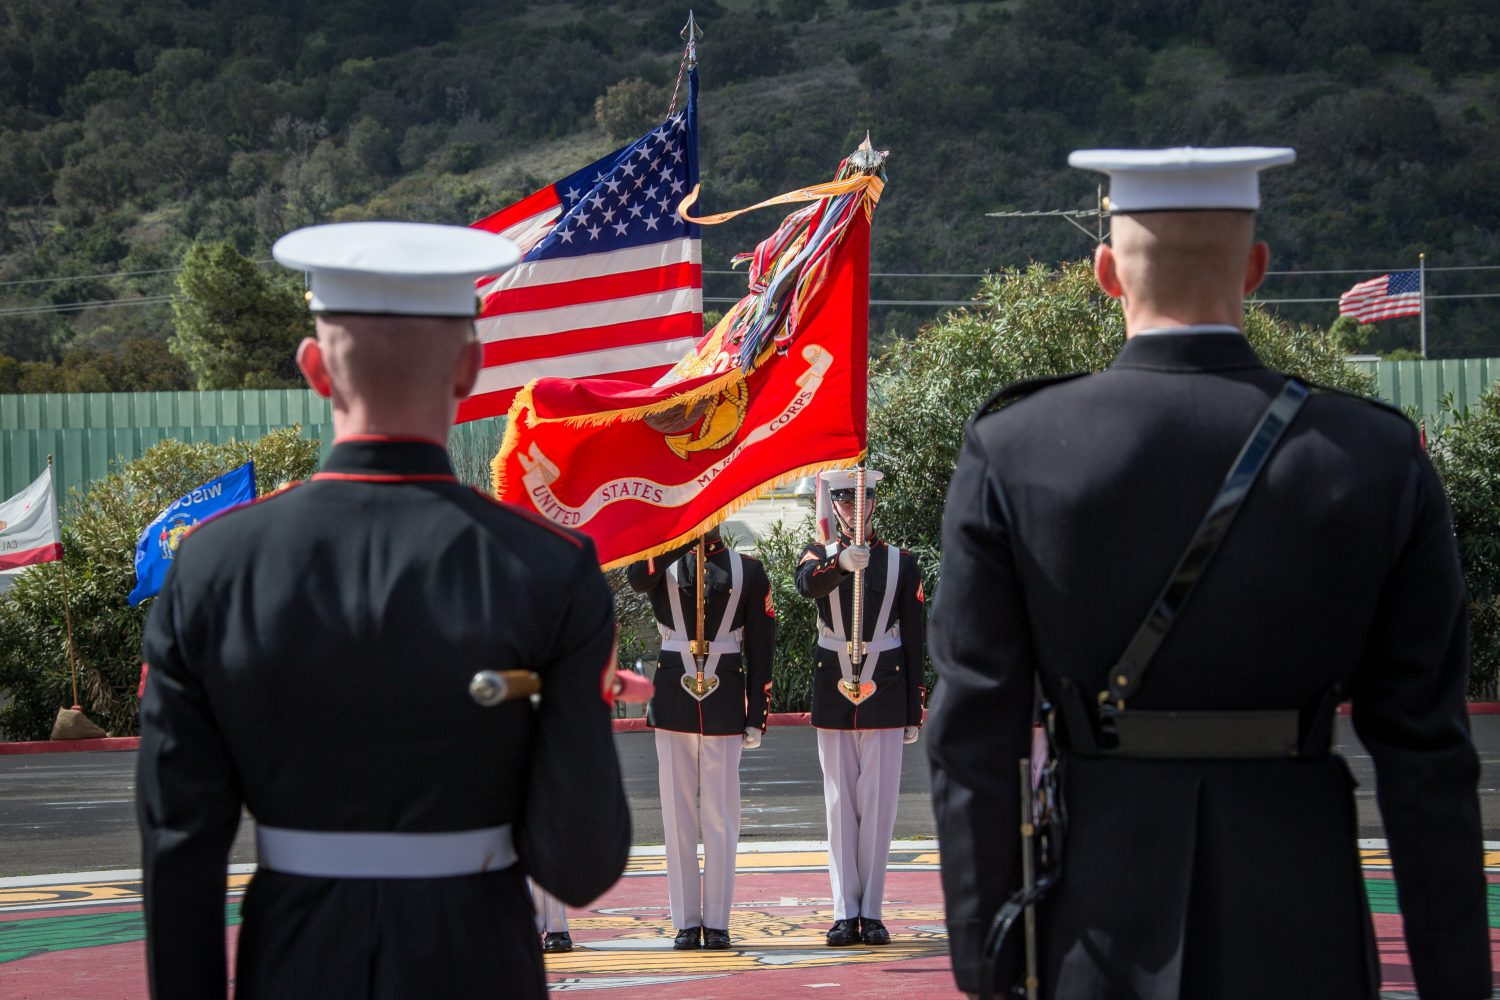 FILE PHOTO: The U.S. Marine Corps Color Guard Platoon during a ceremony at Marine Corps Base Camp Pendleton, California, U.S., March 15, 2018. Lance Cpl. Rhita Daniel/U.S. Marines/Handout via REUTERS